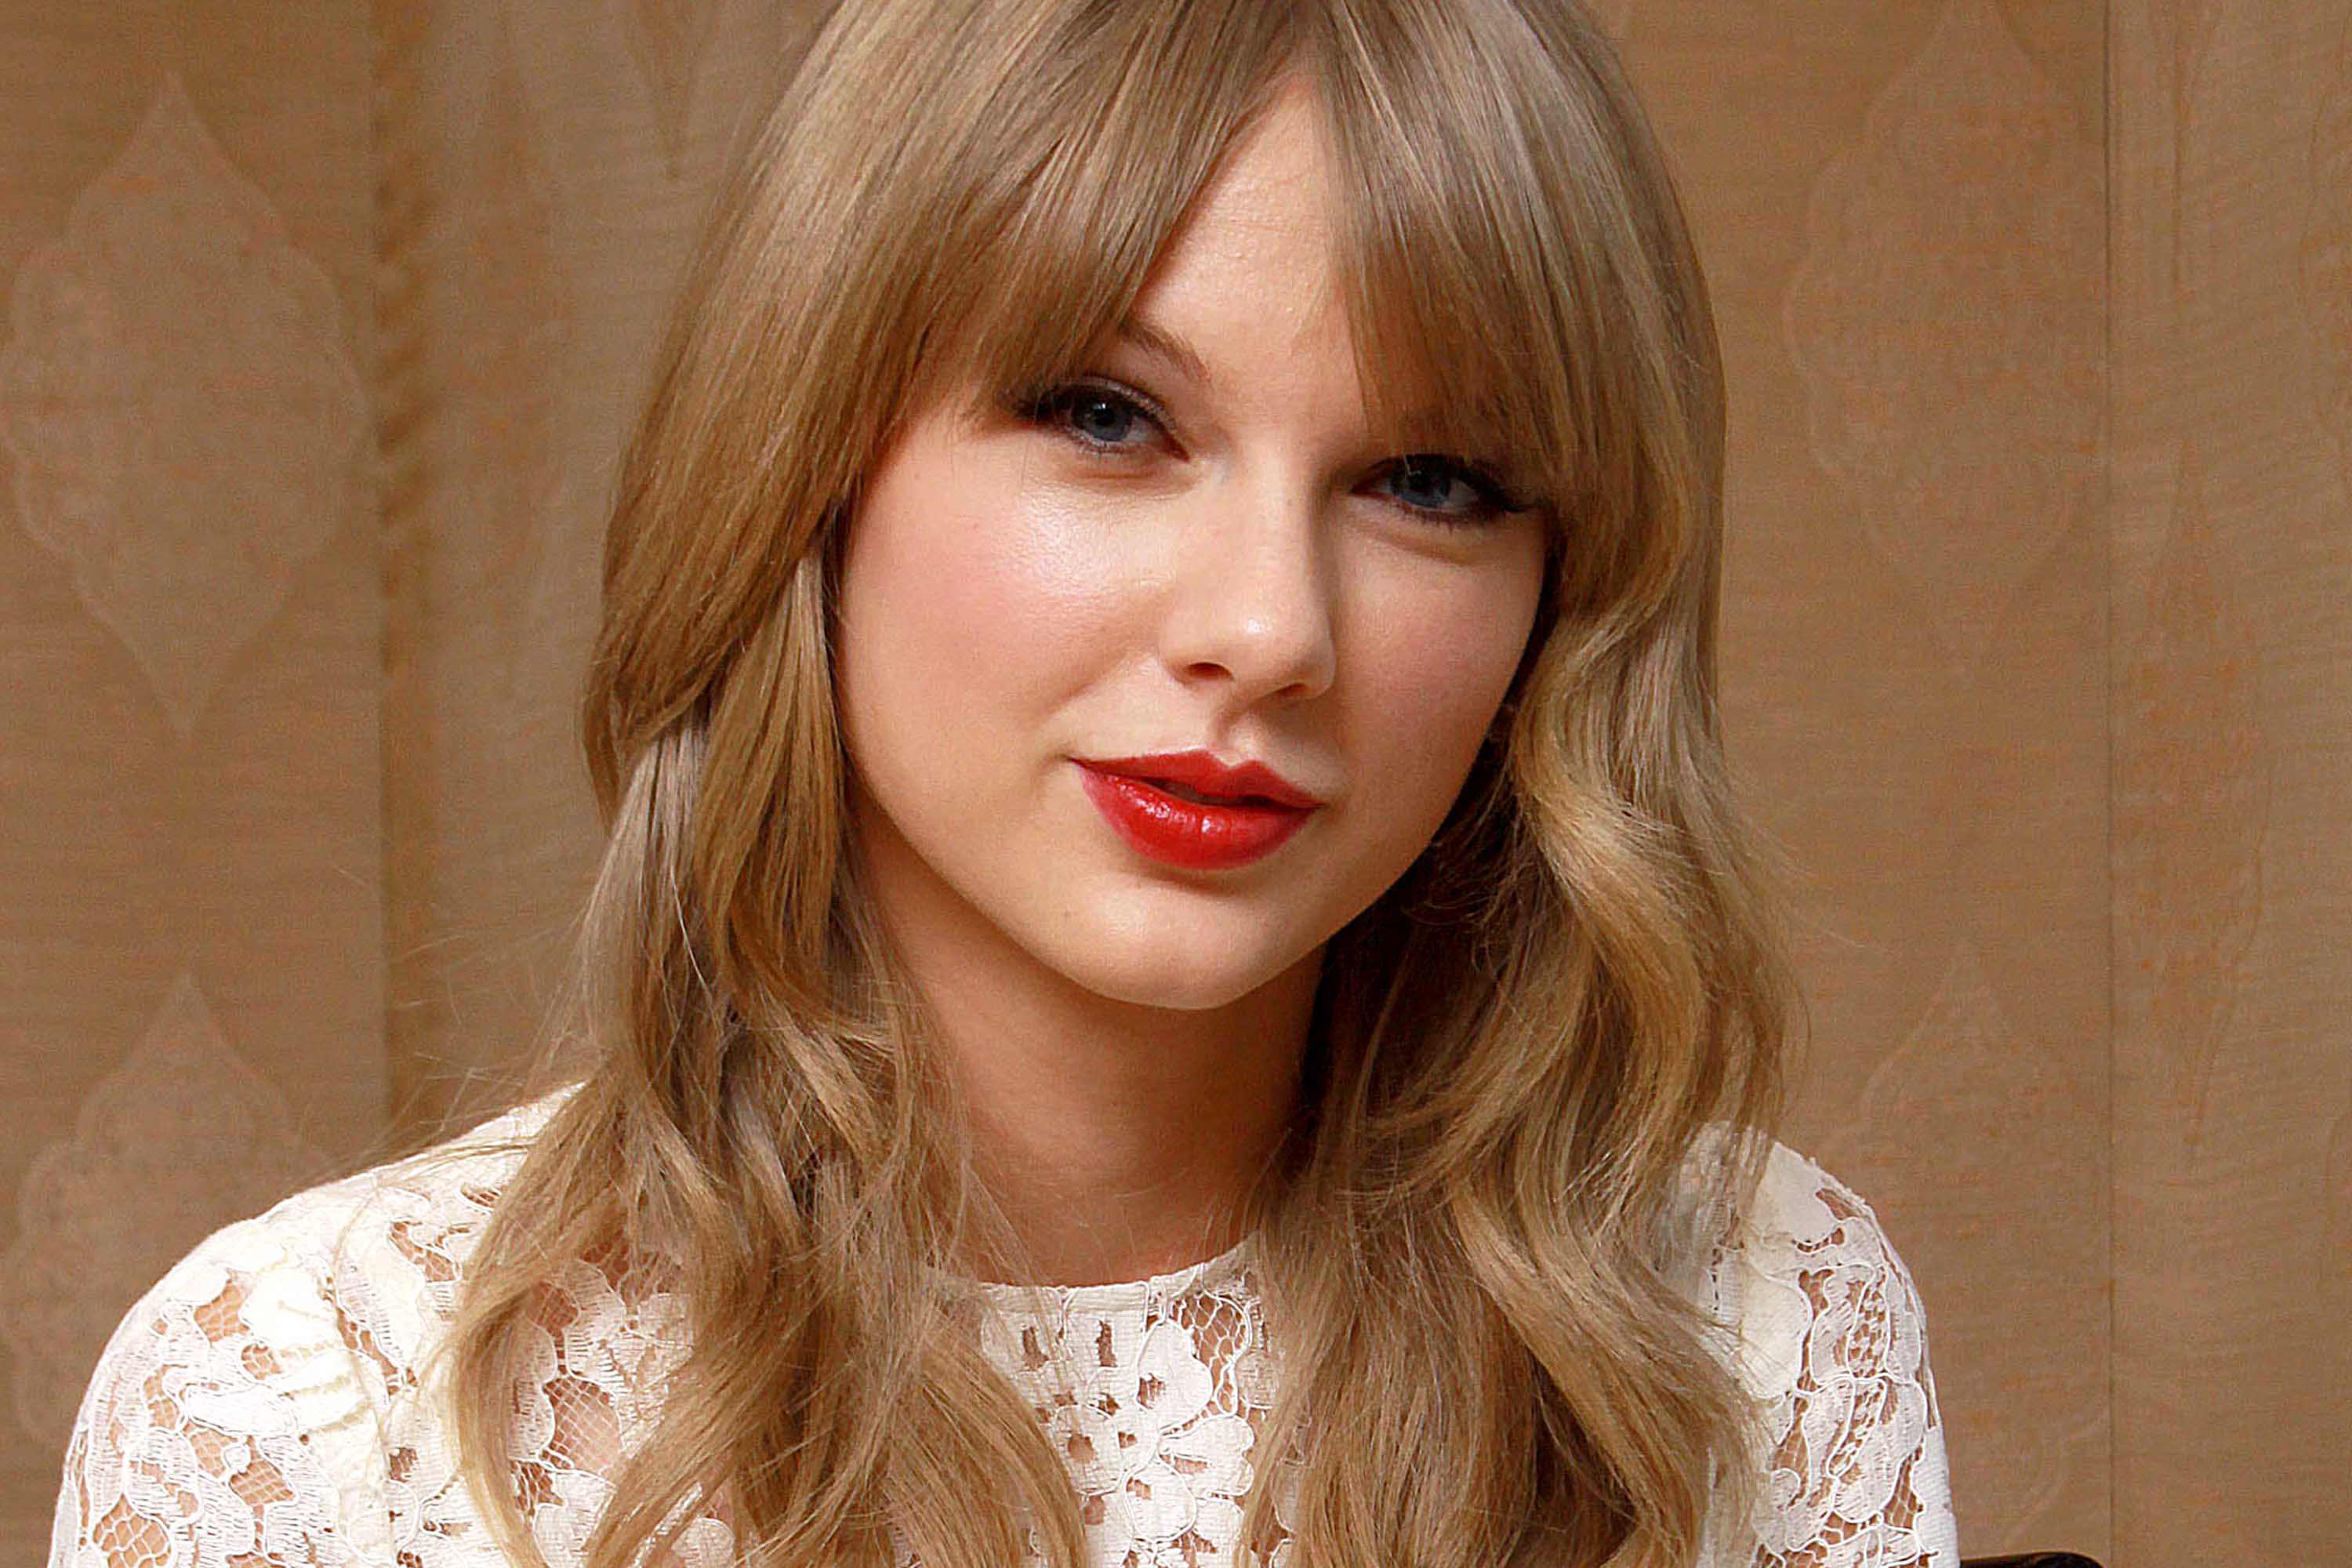 Taylor Swift Writes a Heartfelt Message to a Bullied Fan - Cute Ponytail Hairstyles